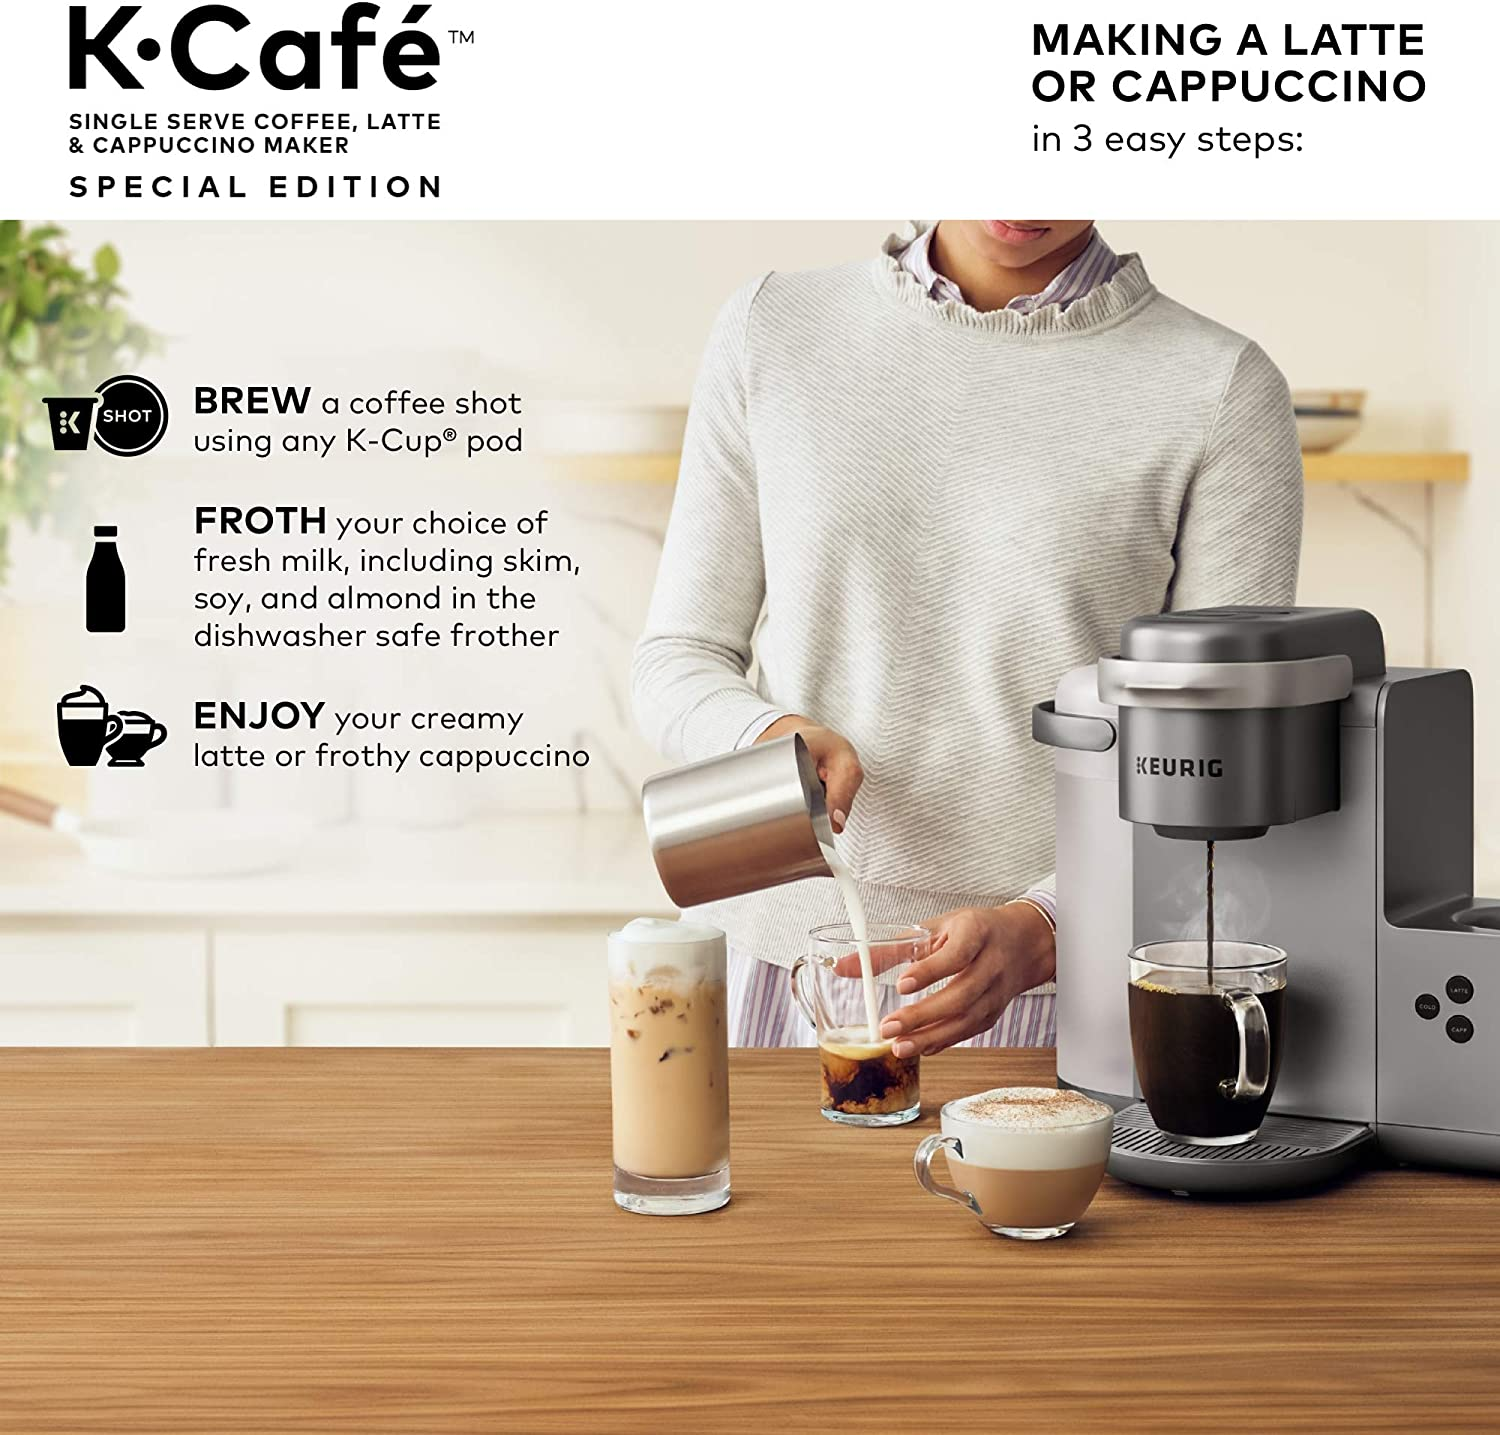 Keurig K-Café Special Edition Coffee Maker, Single Serve K